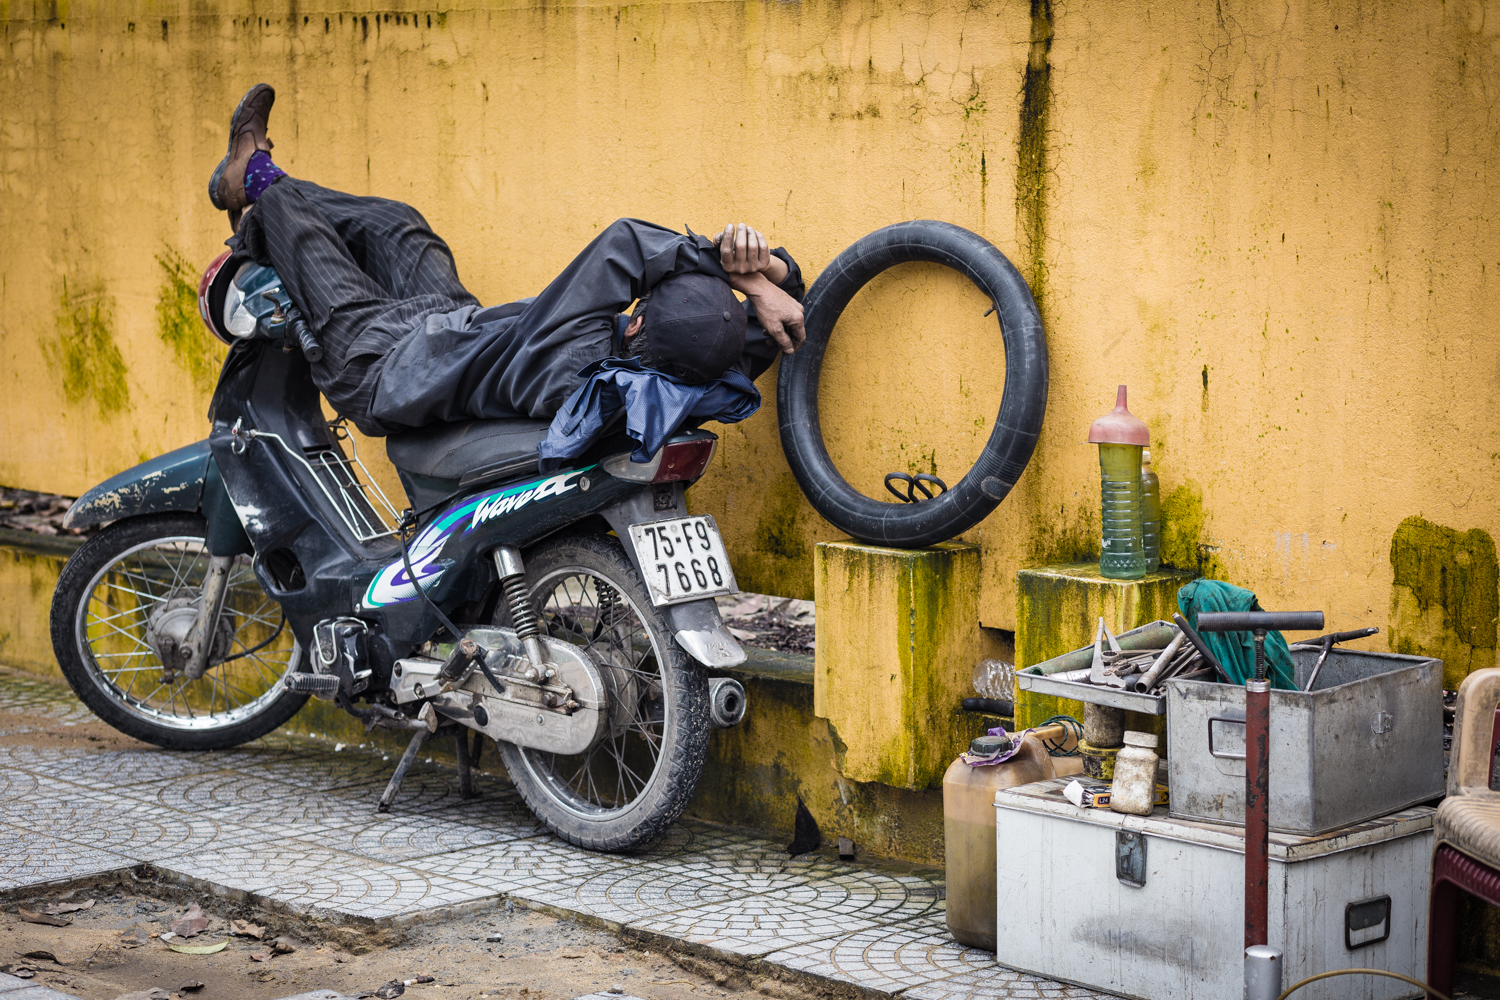 The Vietnamese LOVE napping on their bikes like this.